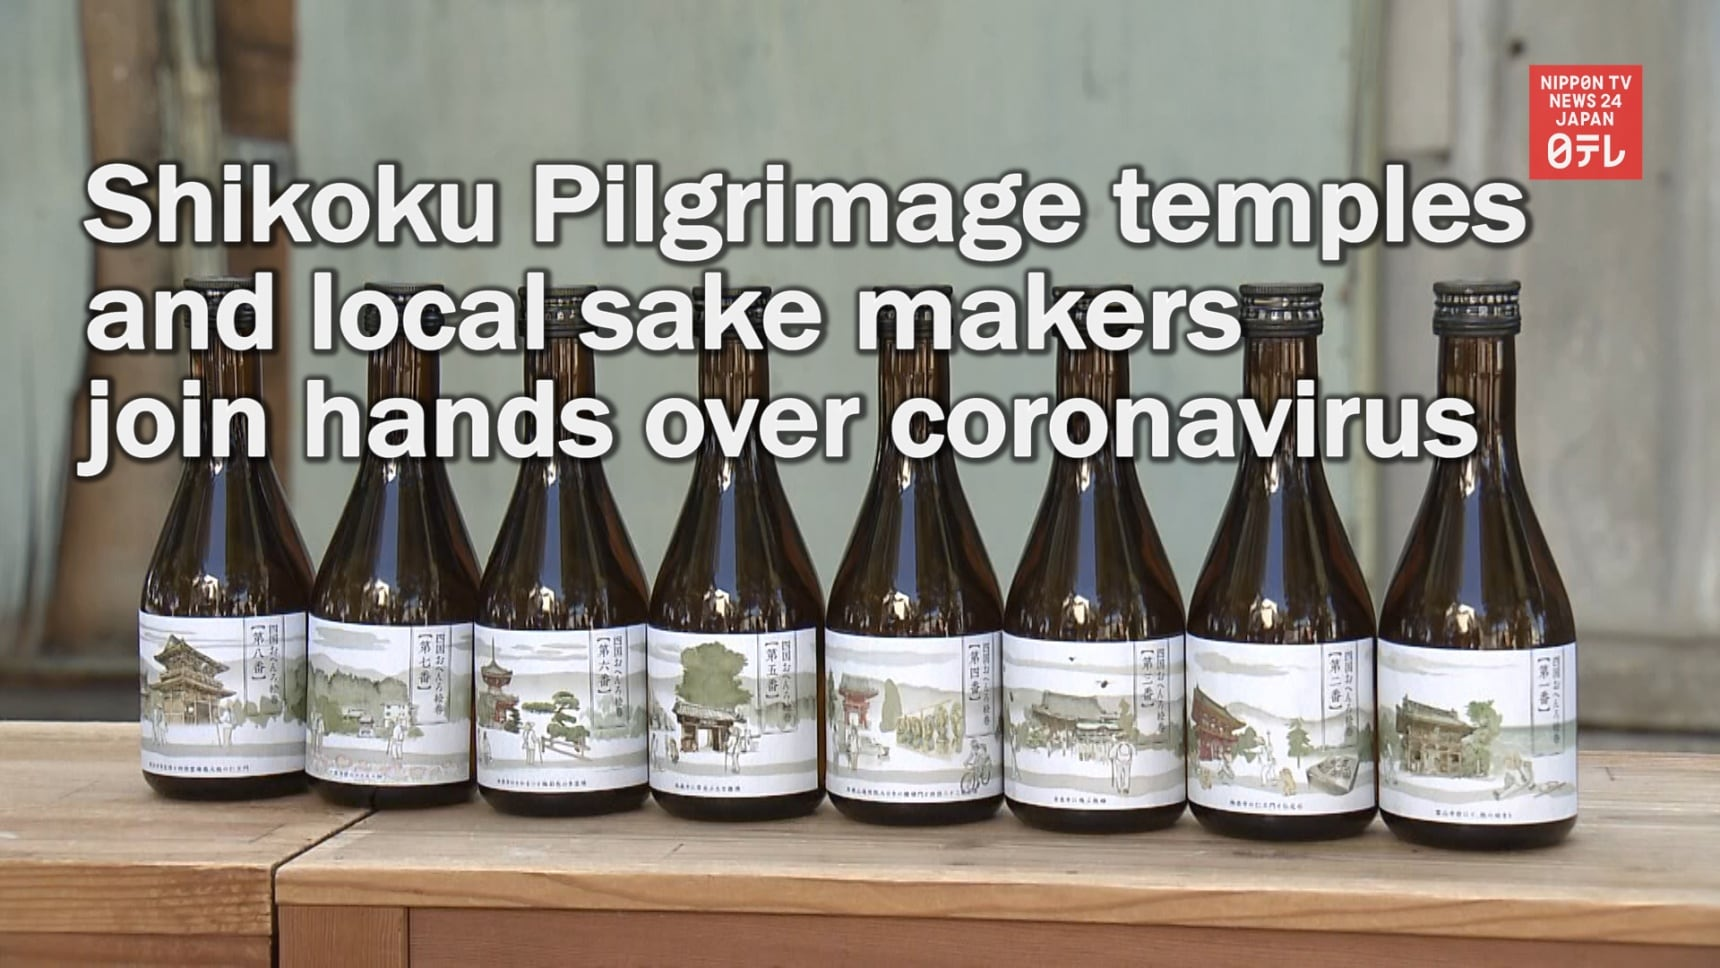 Pilgrimage Temples & Sake Brewers Join Forces